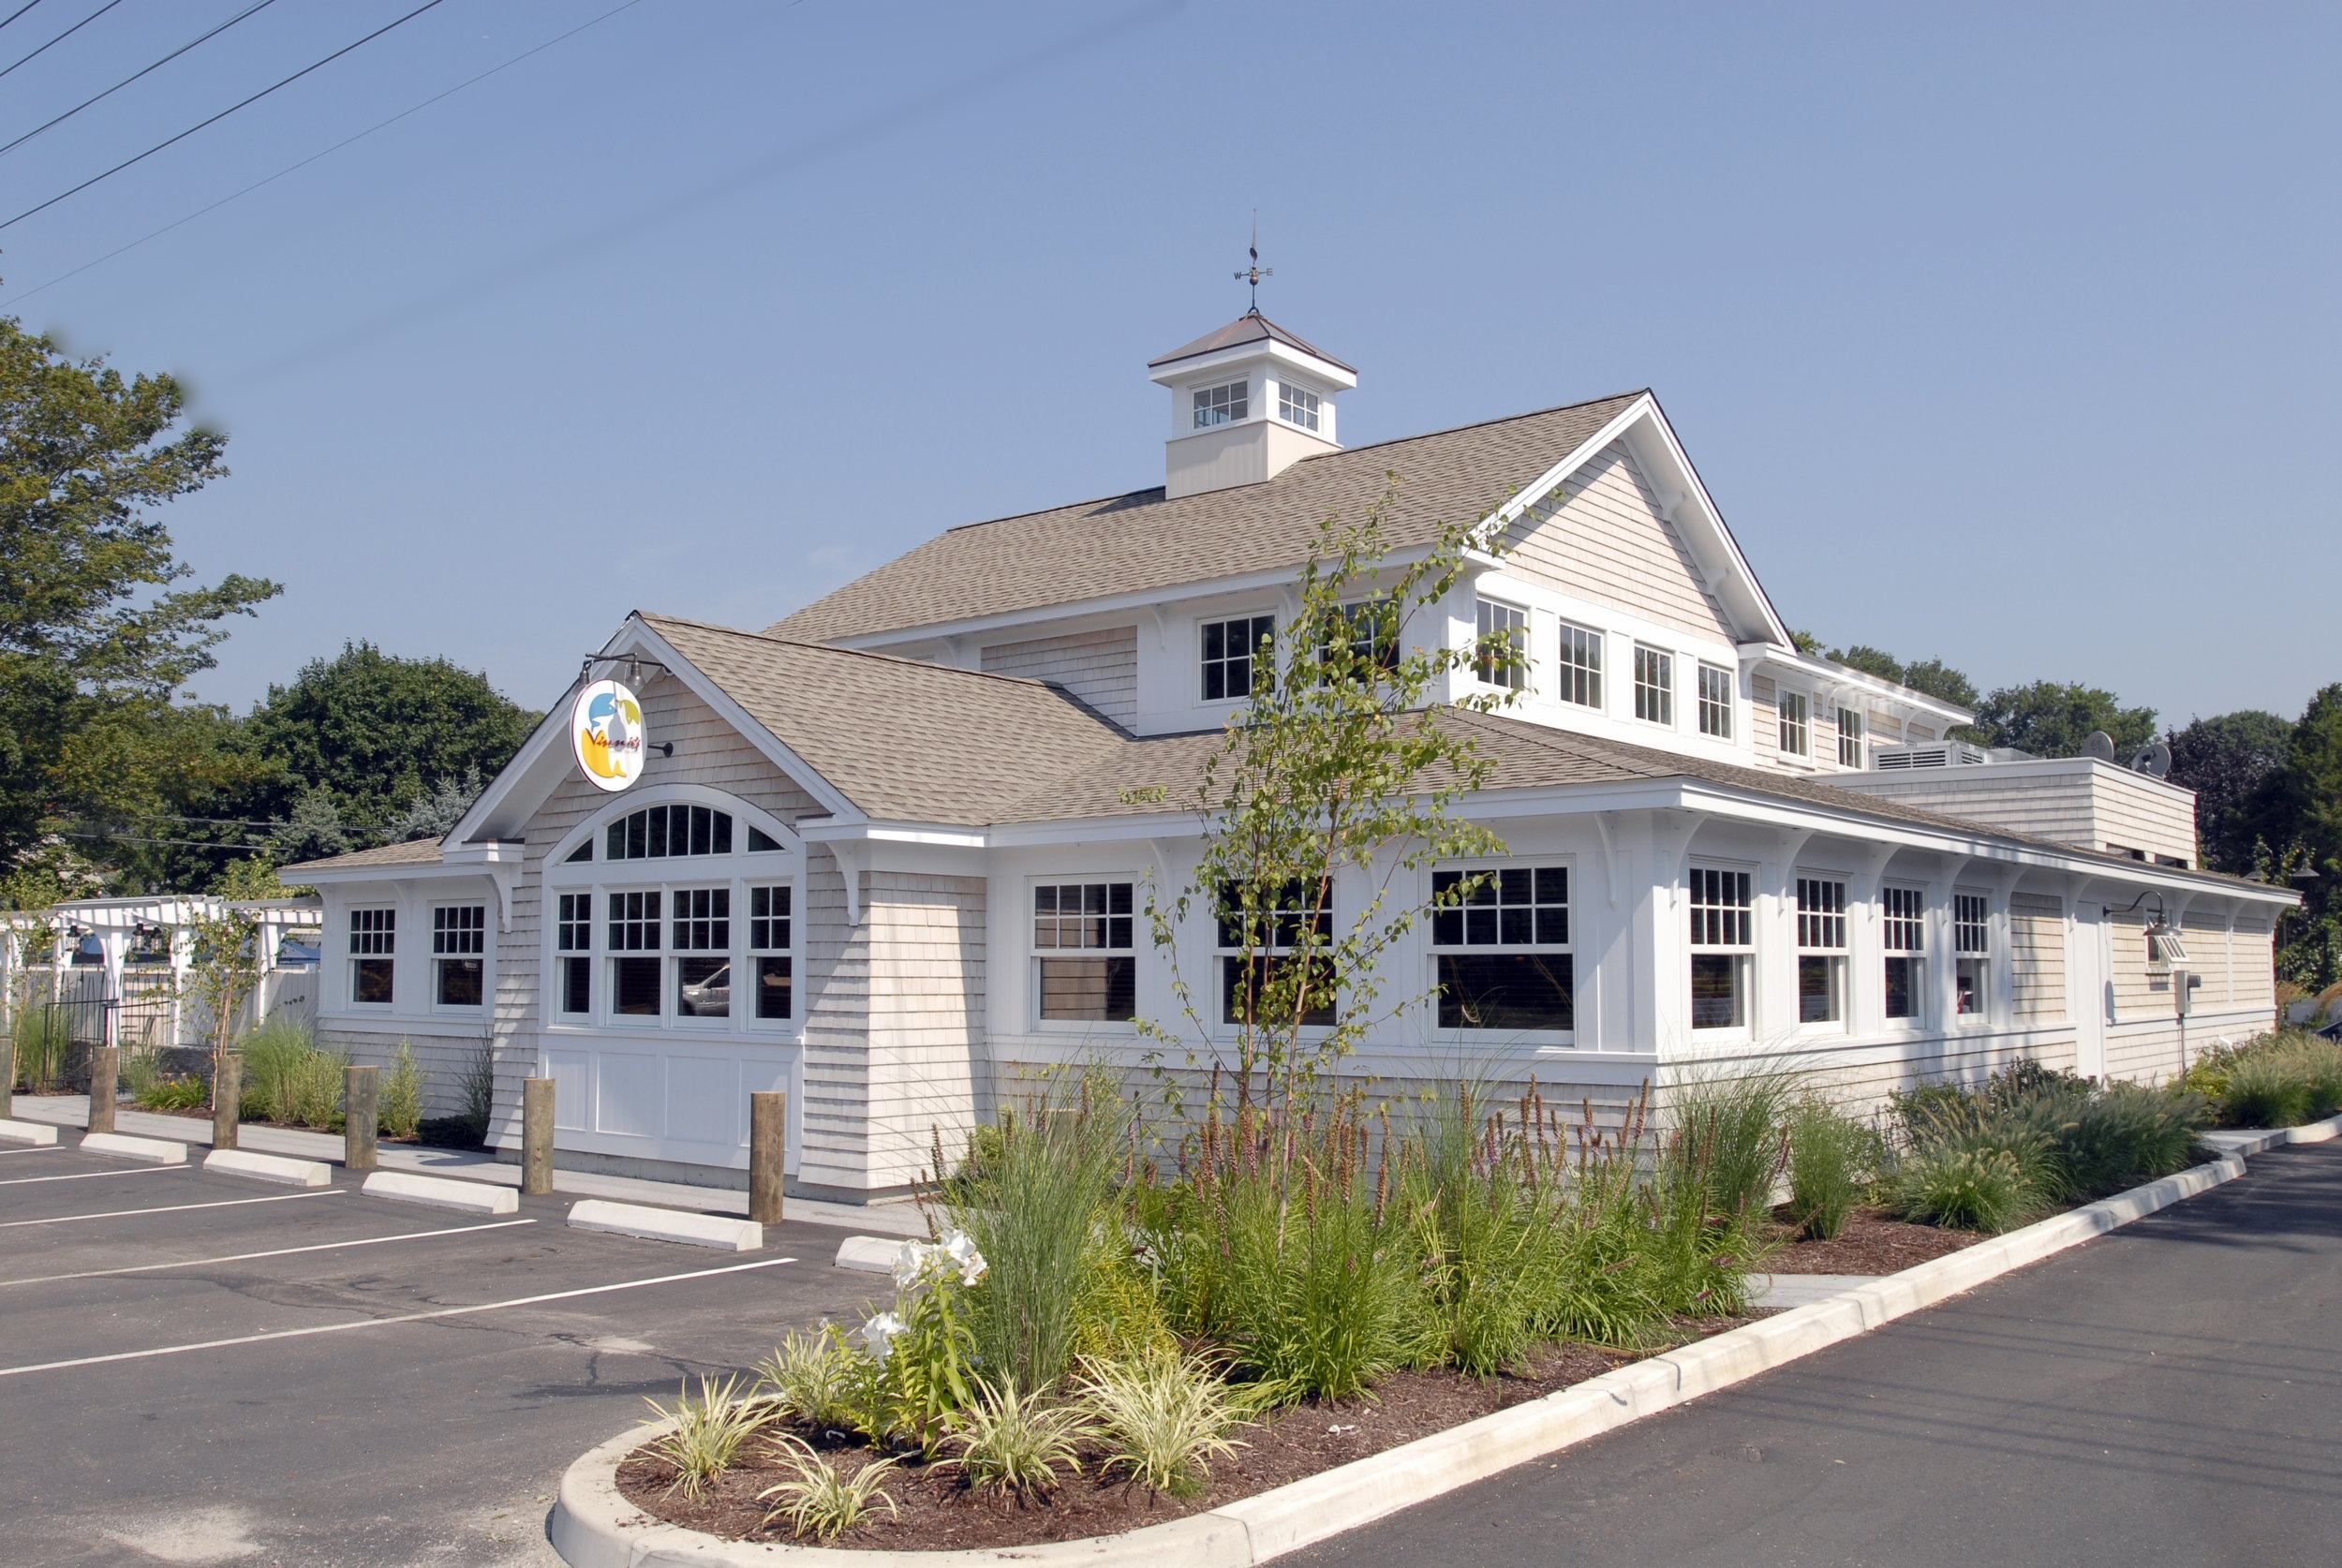 Saybrook Fish house, Old saybrook, CT